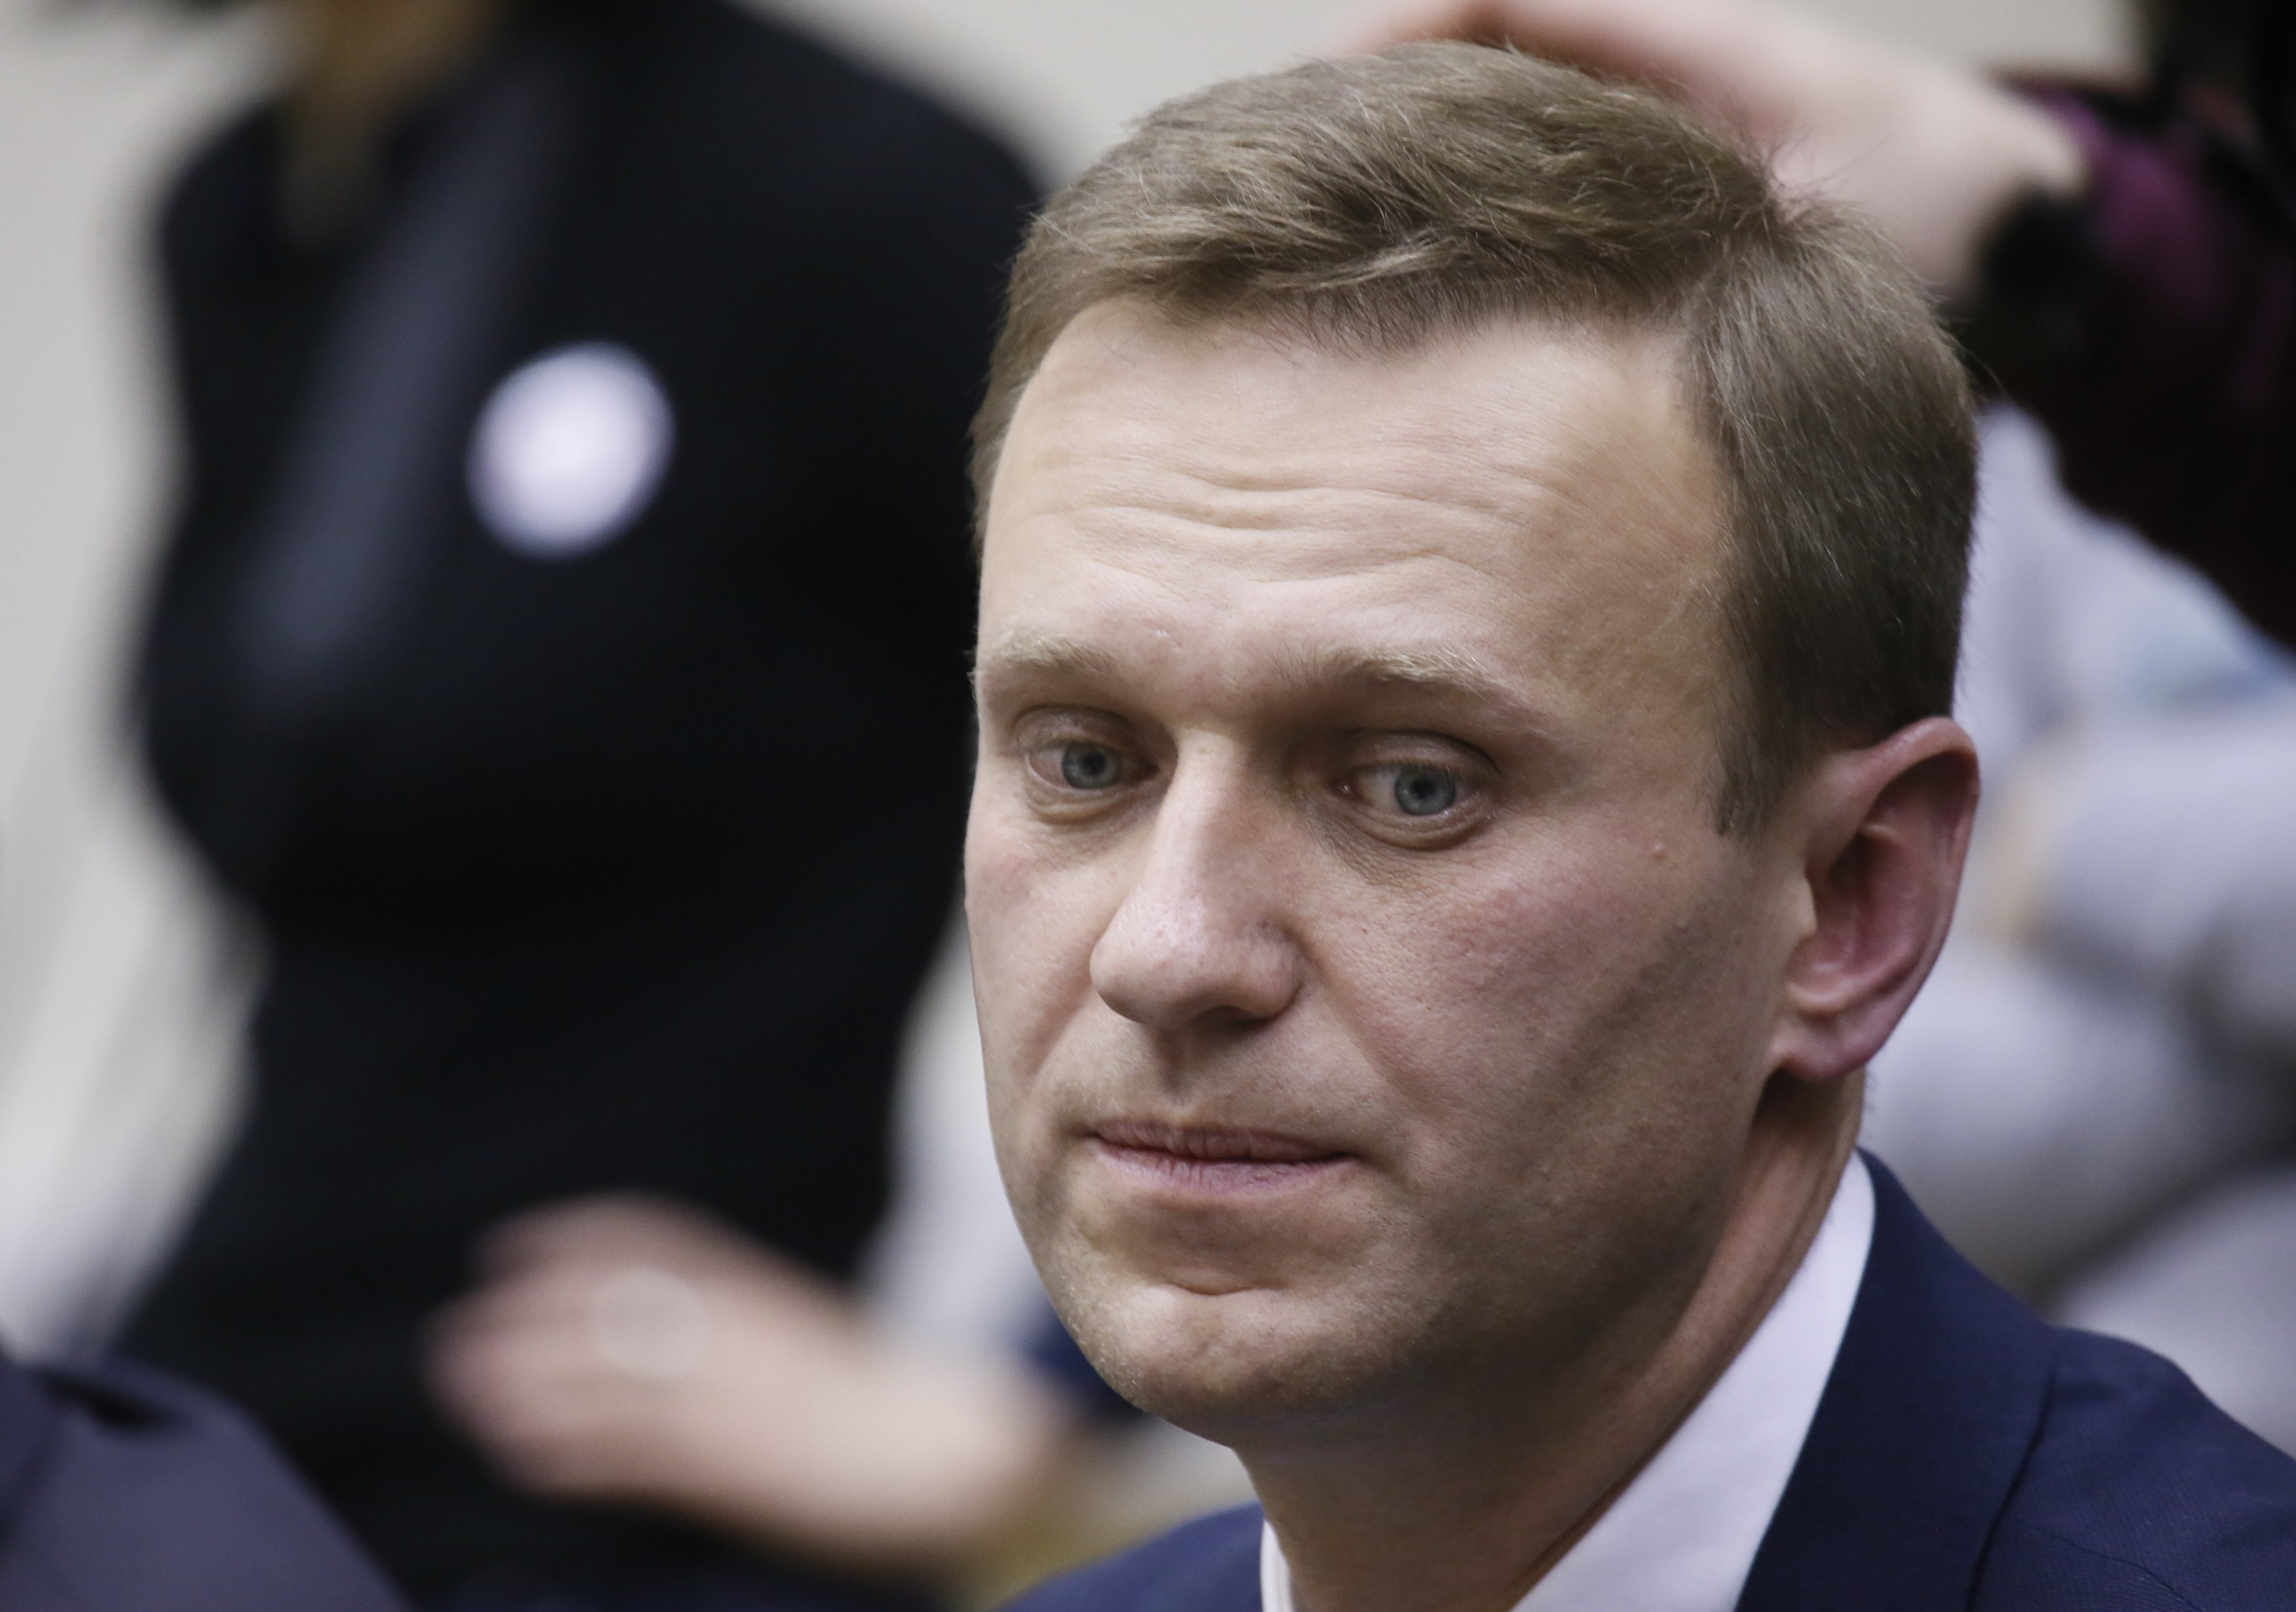 EU Questions Russia's 2018 Vote After Decision to Bar Opposition Leader Navalny